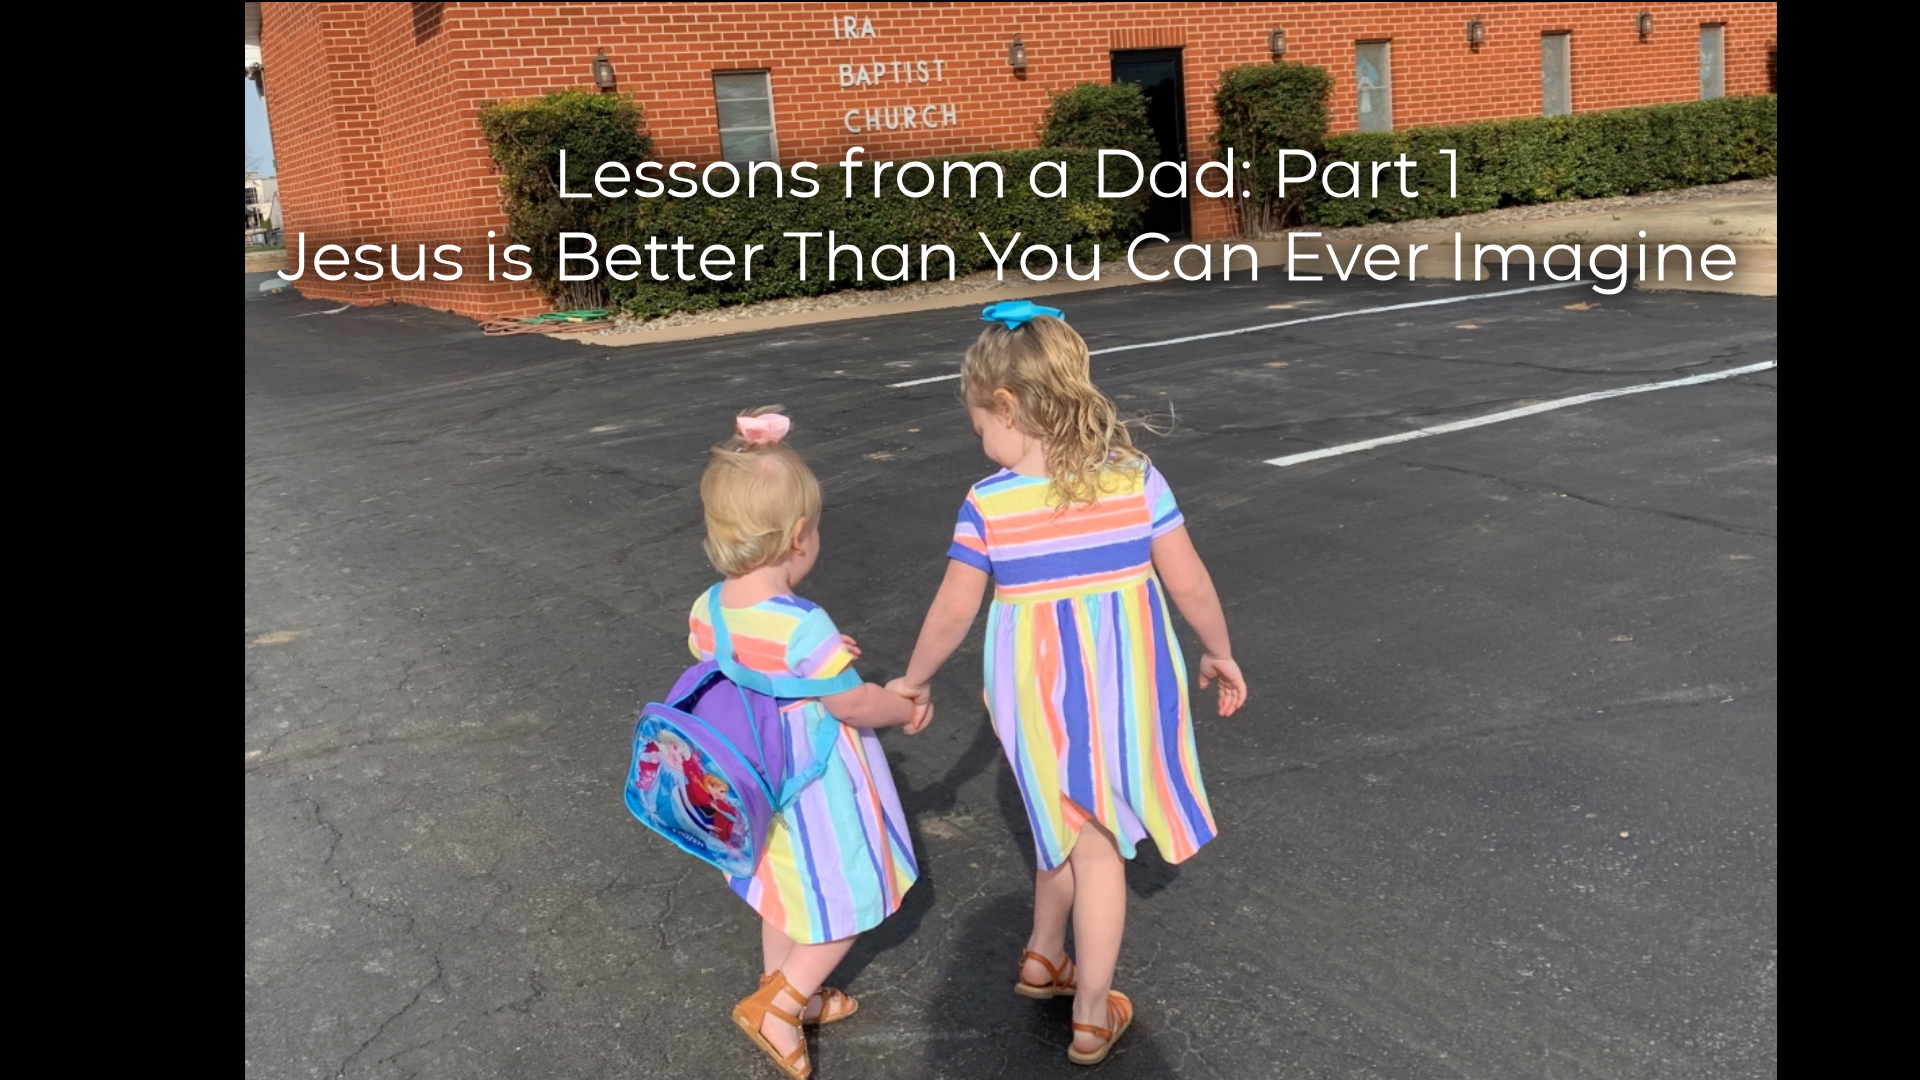 Lessons from a Dad: Part 1 Jesus is Better Than You Can Ever Imagine